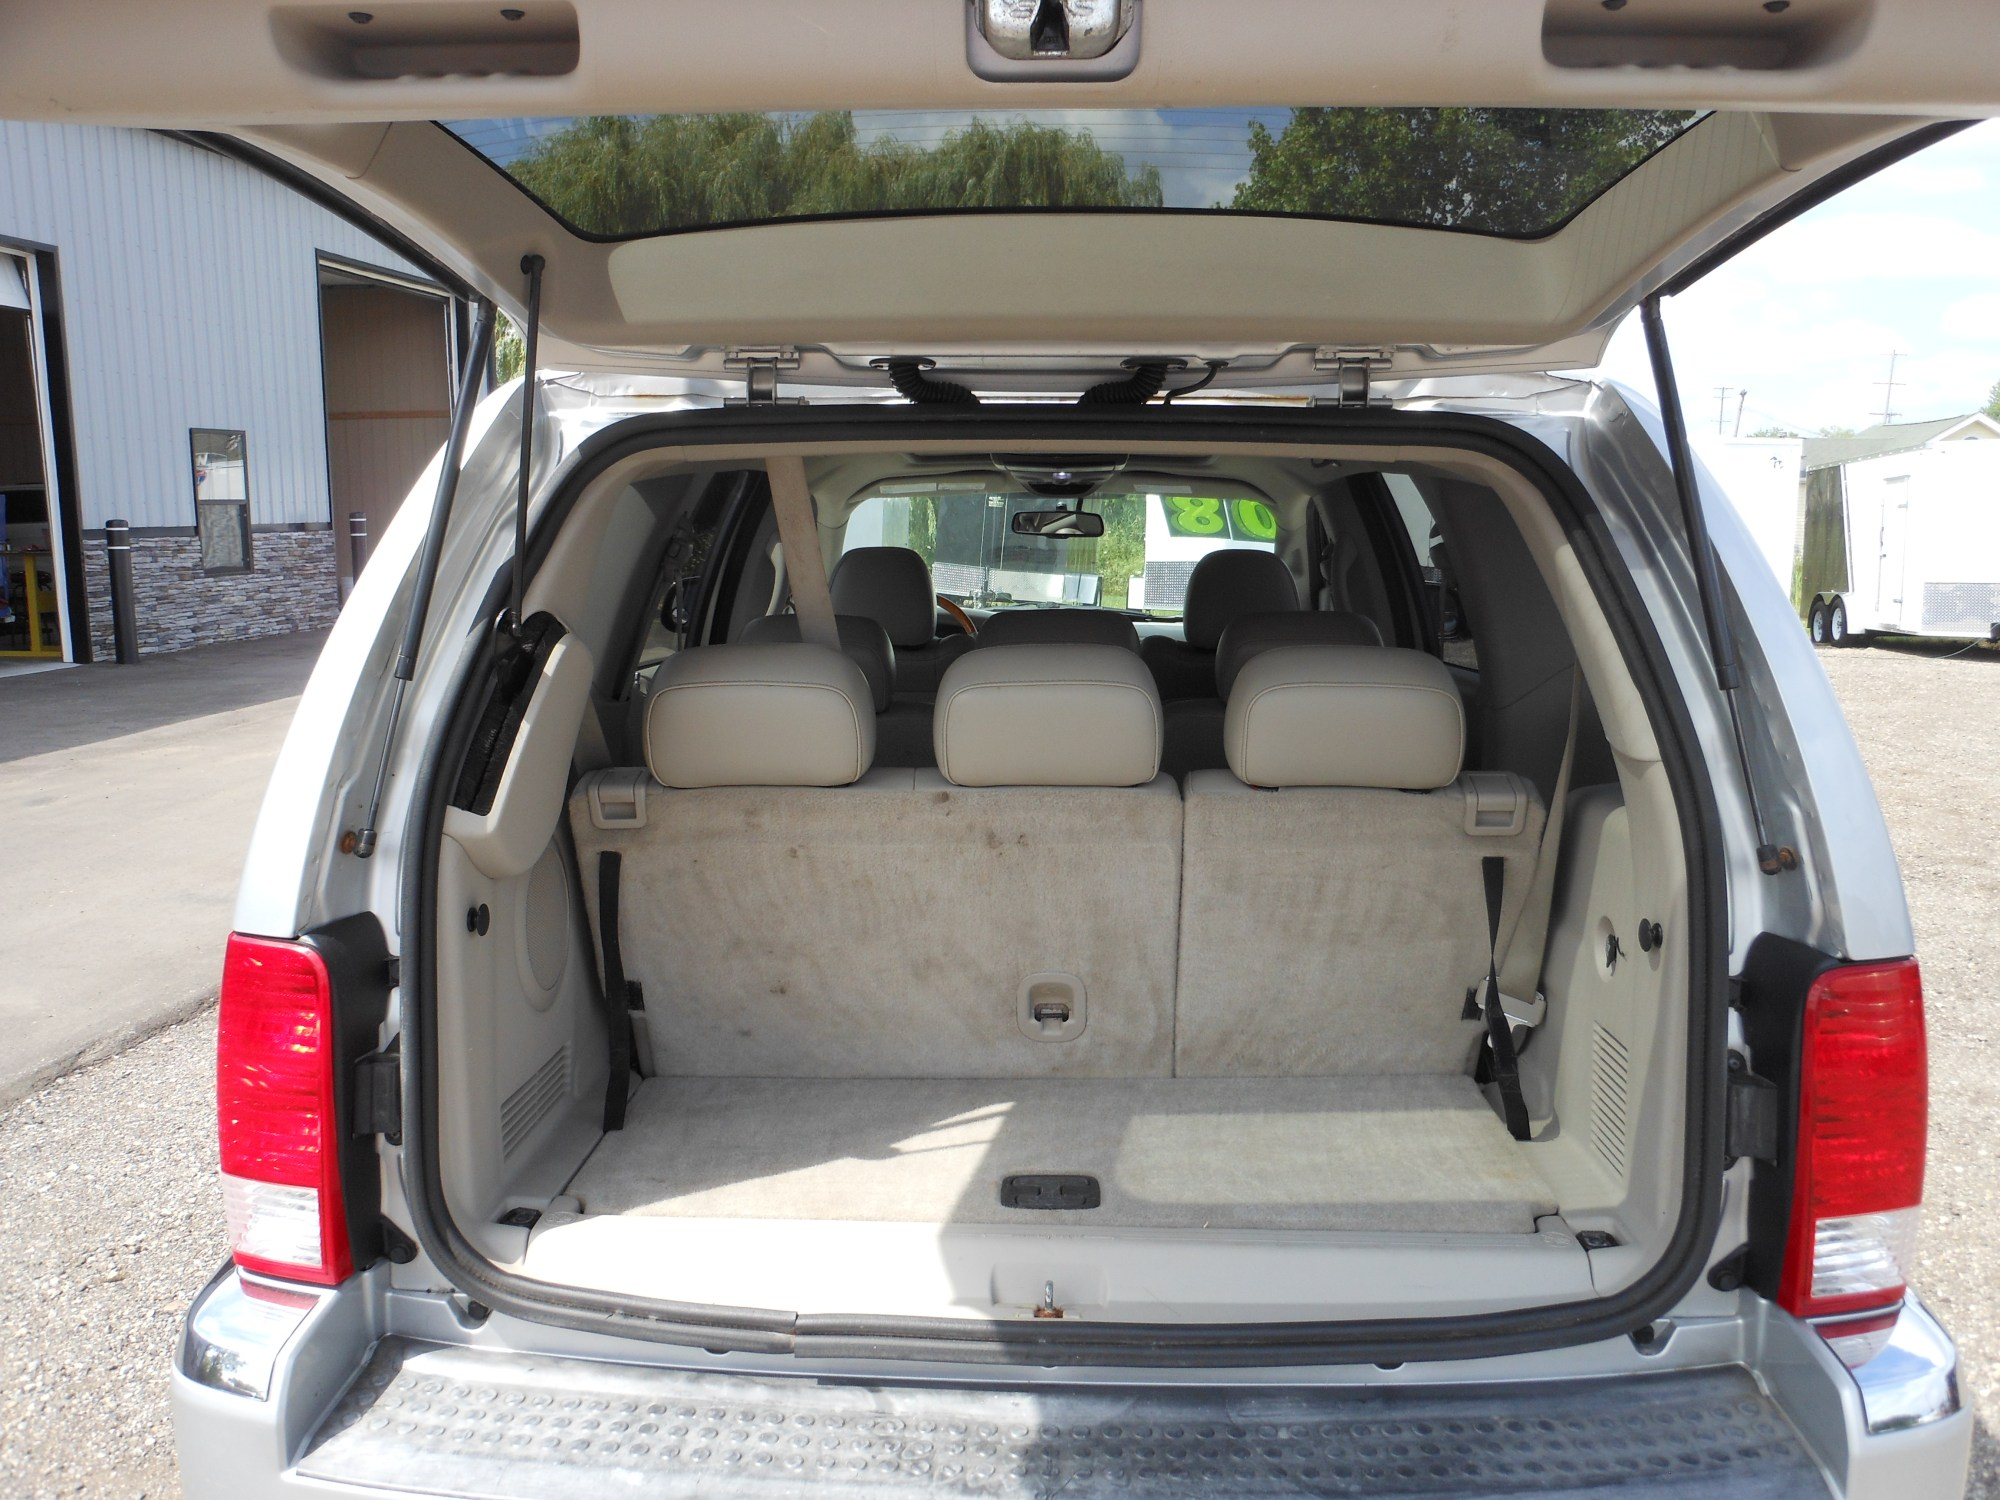 hight resolution of  sun roof power driver and passenger seats 3rd row seating back up camera power windows locks and mirrors am fm cd mp3 aux roof rack chrome wheels